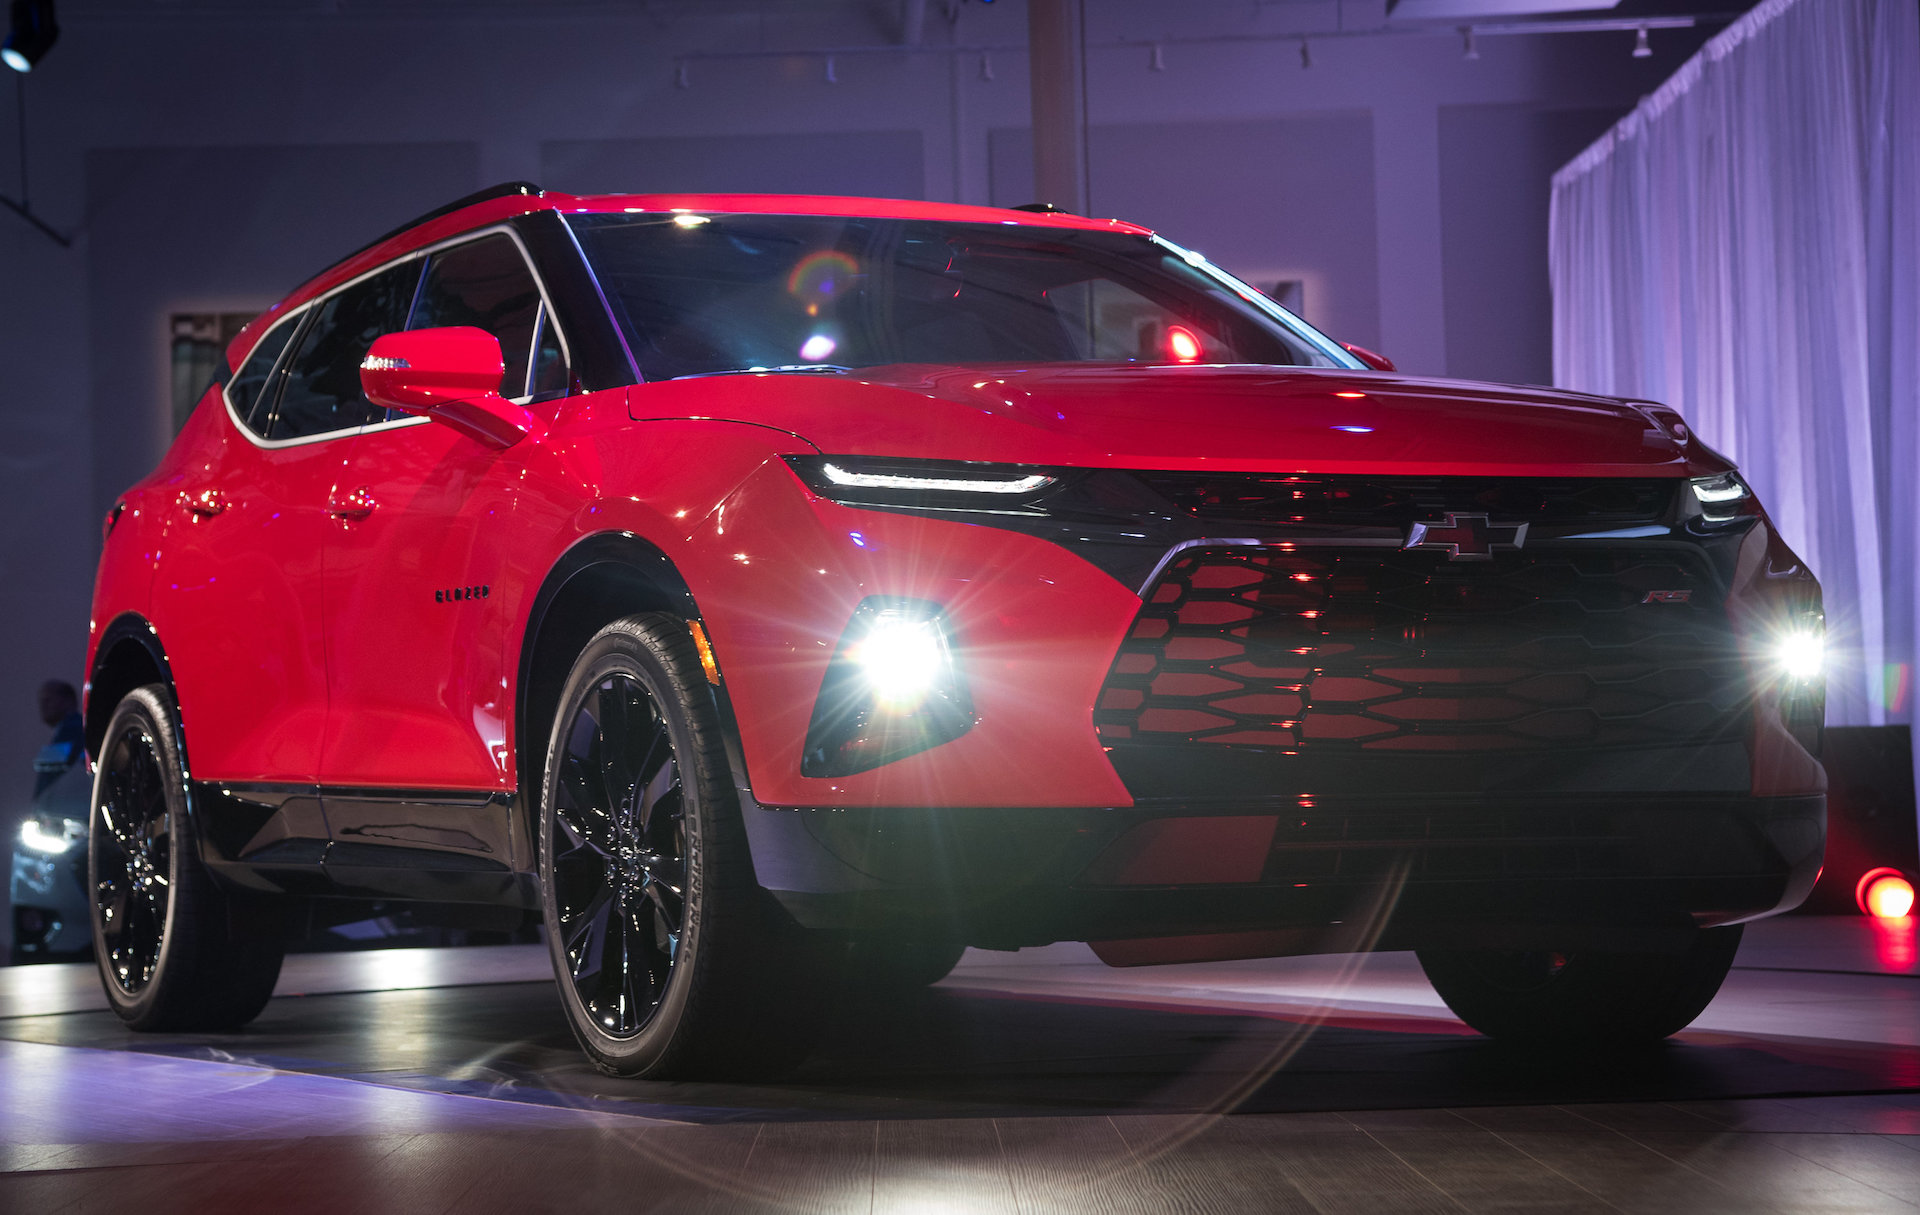 2019 Chevy Blazer, Corvette ZR1 recall, self-driving Volvo